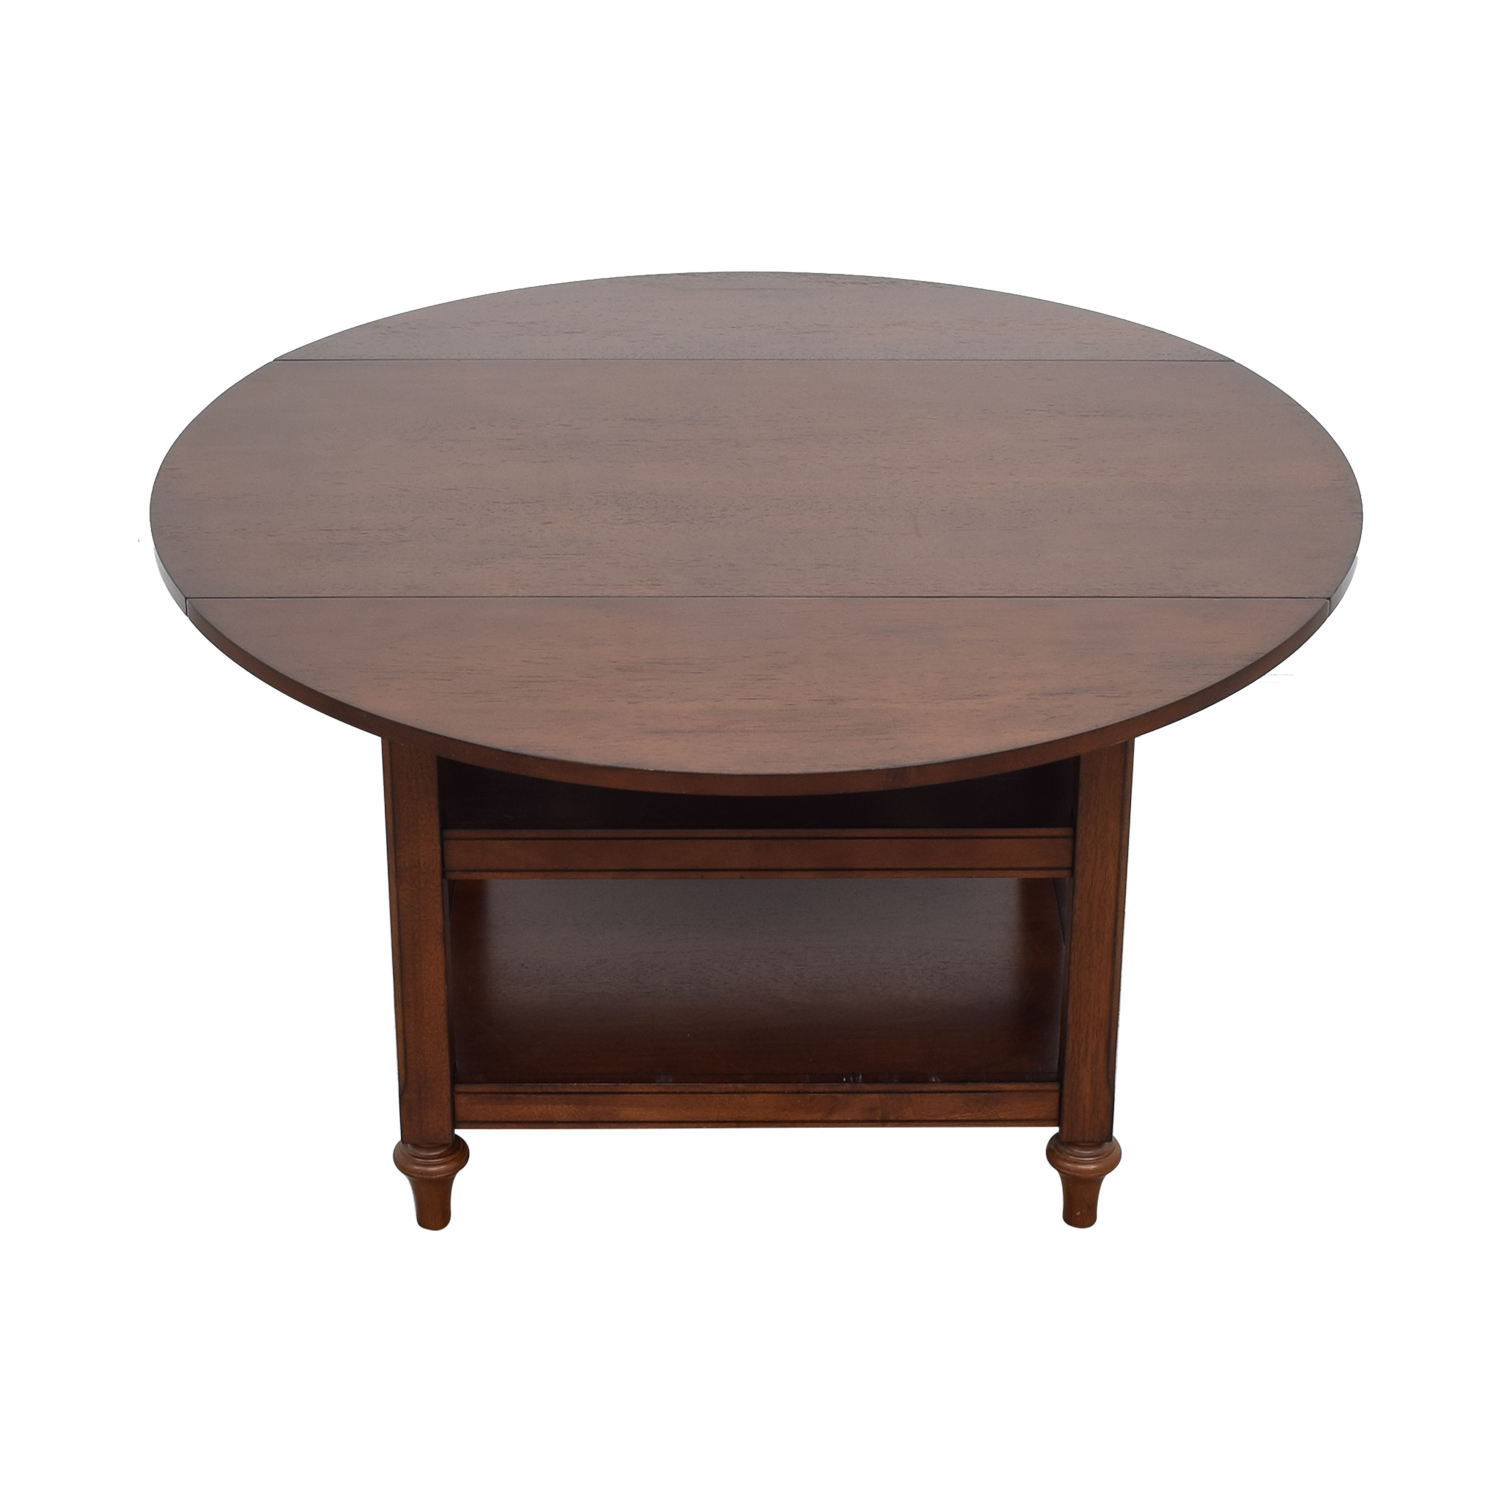 Pottery Barn Pottery Barn Shayne Drop Leaf Kitchen Table second hand